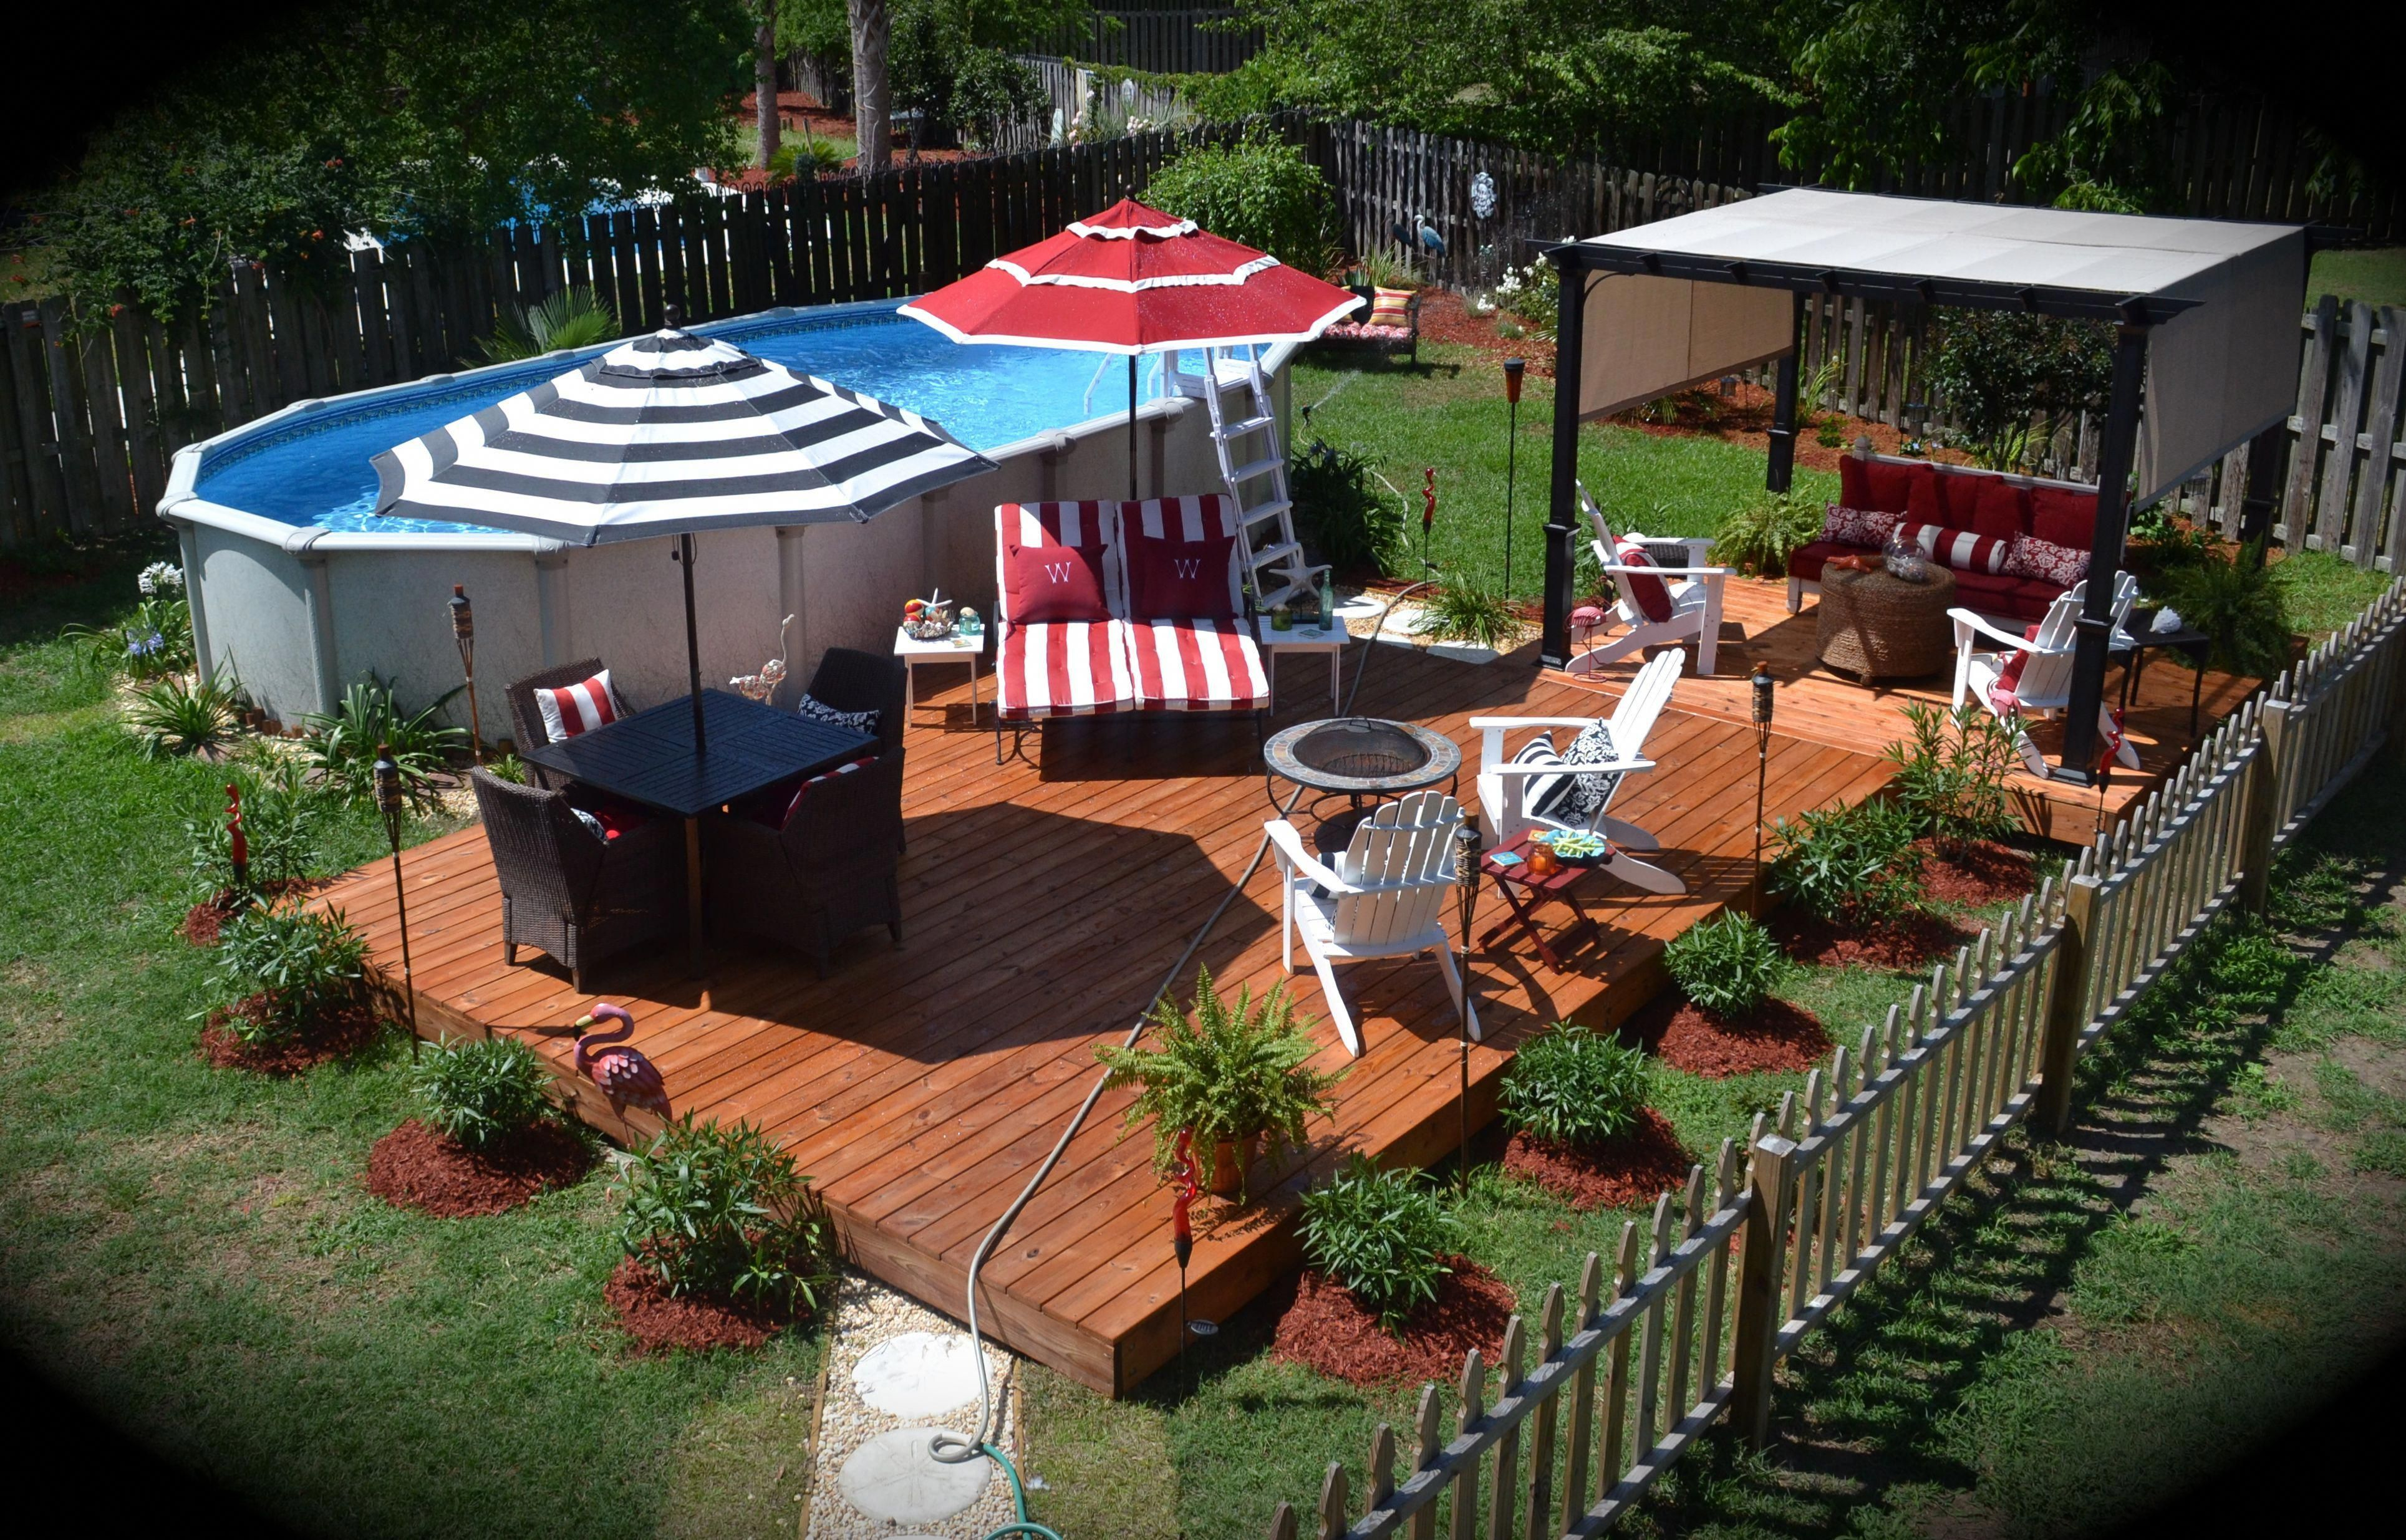 Best Landscaping Companies Near Me #LandscapingJobsNearMe ... on Backyard Landscaping Companies Near Me id=77087